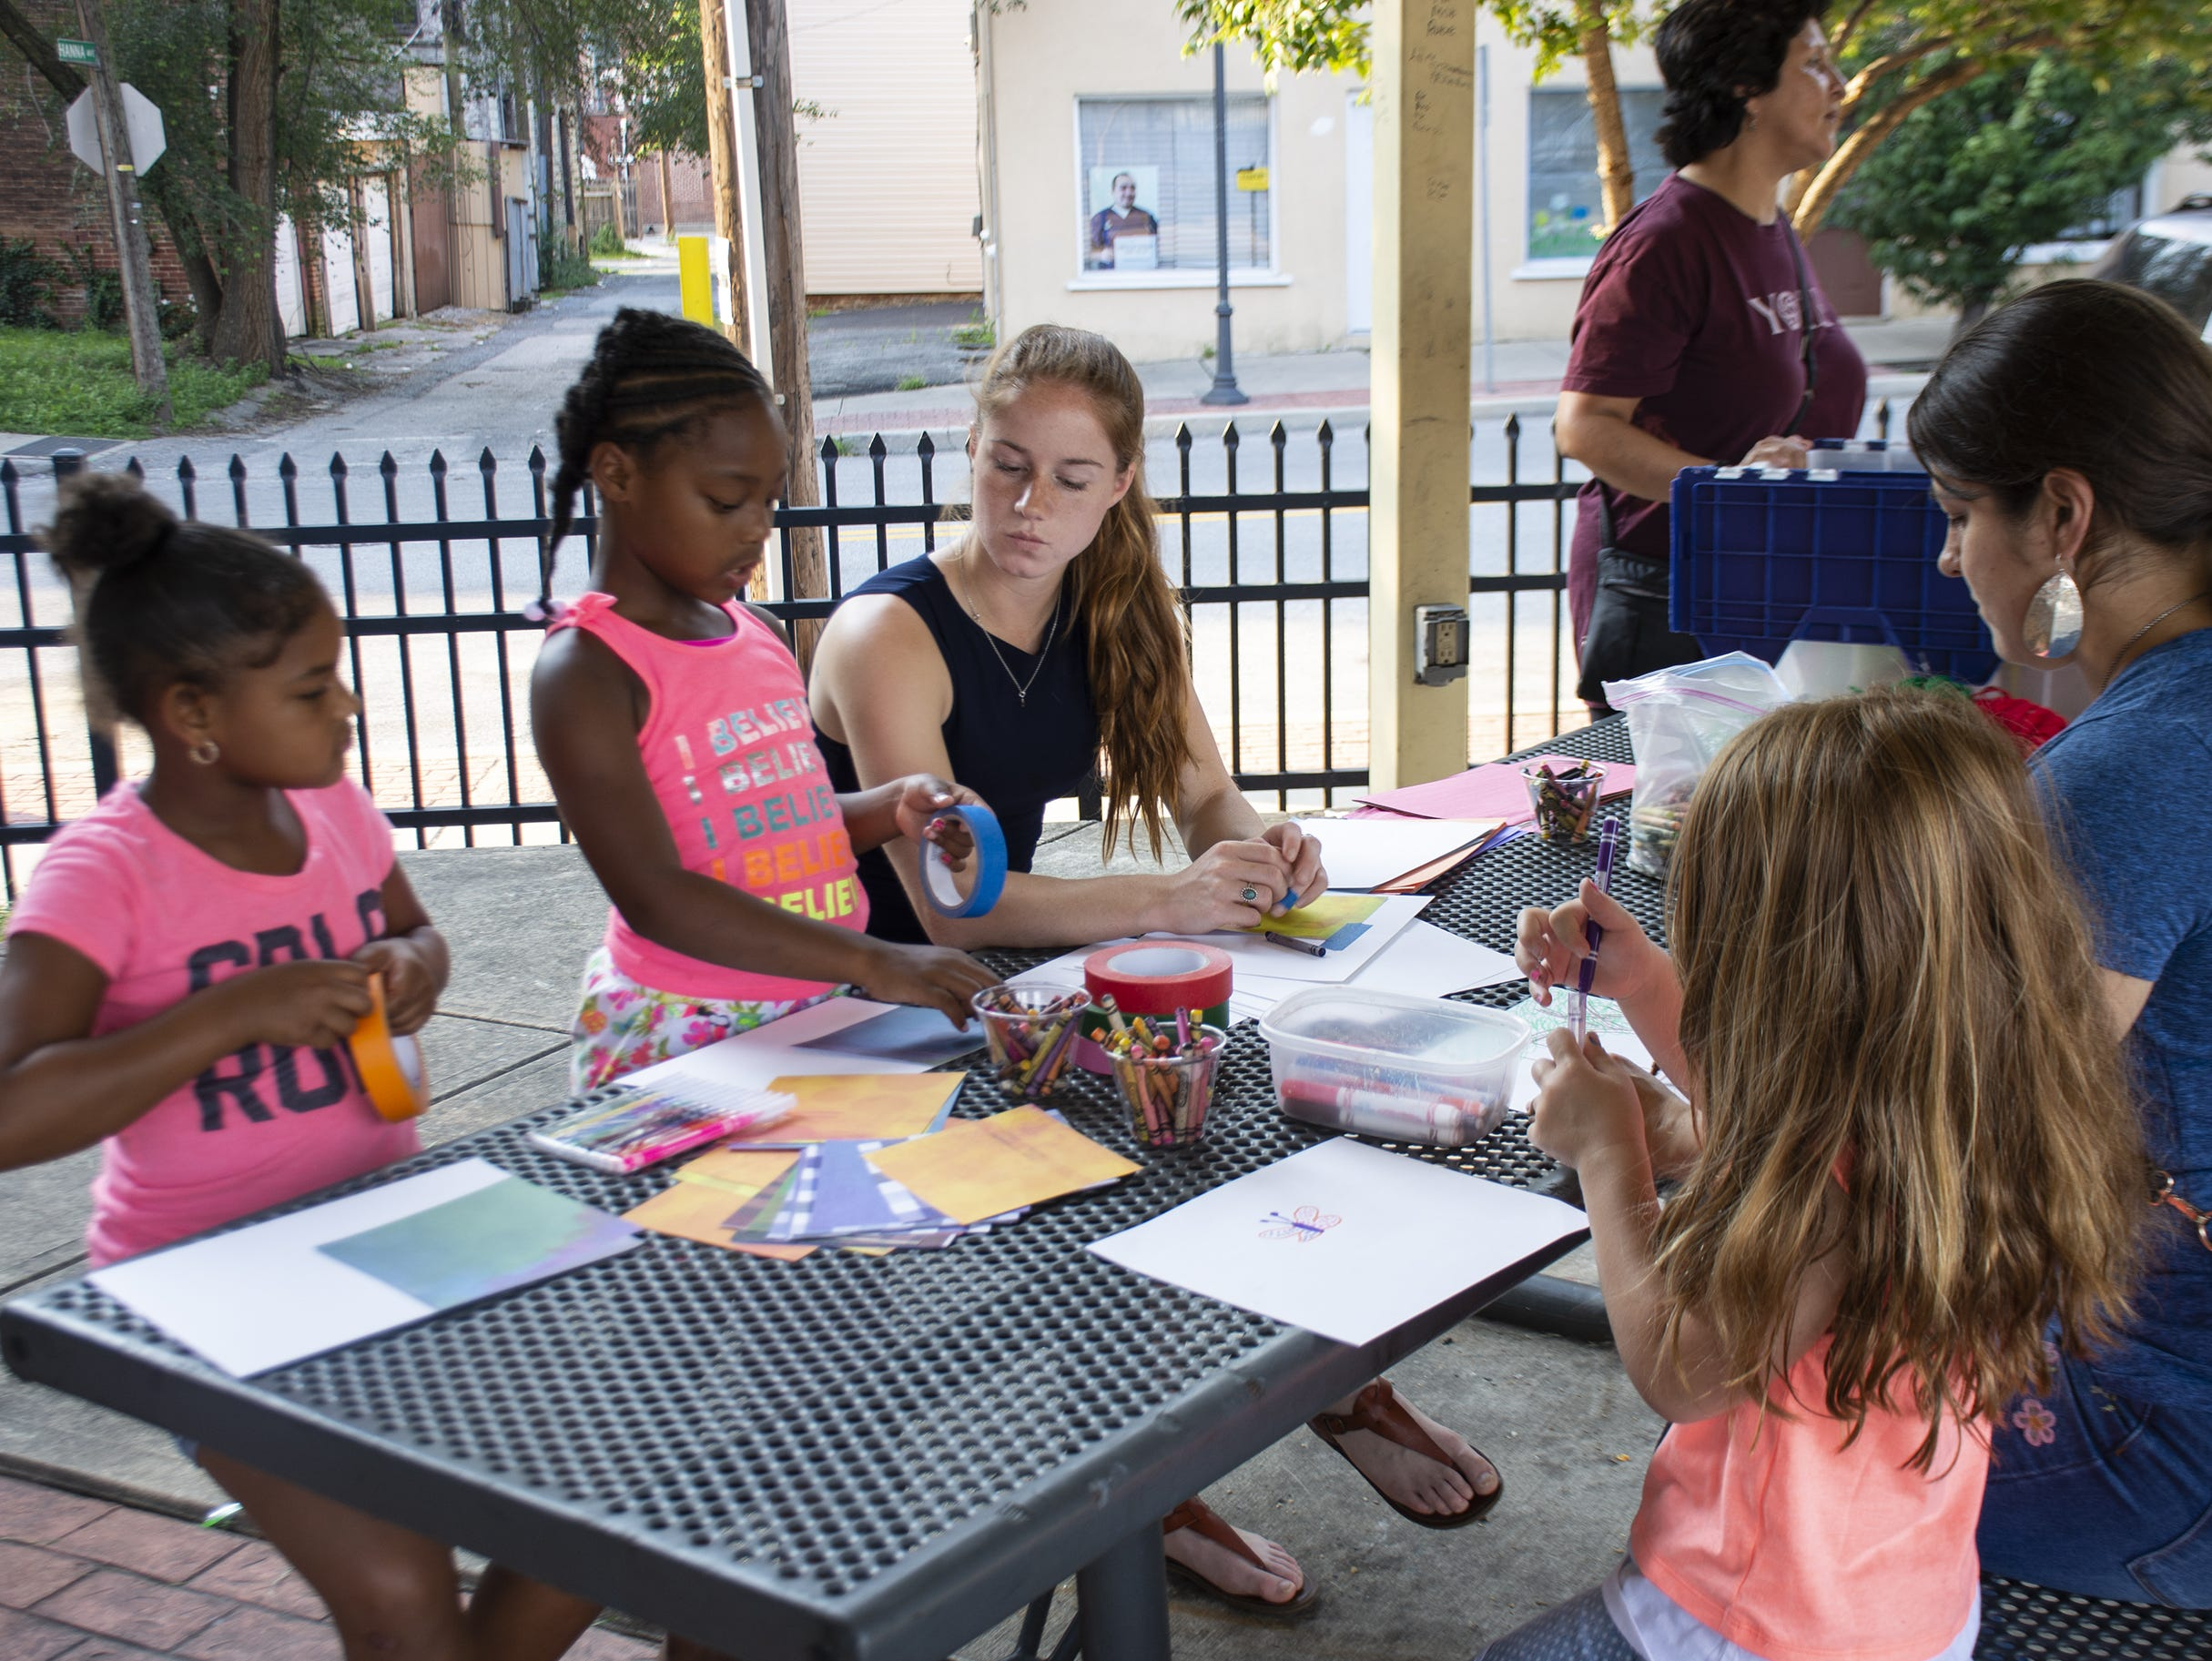 Kids can draw and paint during this week's Art In The Parks event from 6:30 to 7:30 p.m. Aug. 6-10 at Renaissance Park in York.